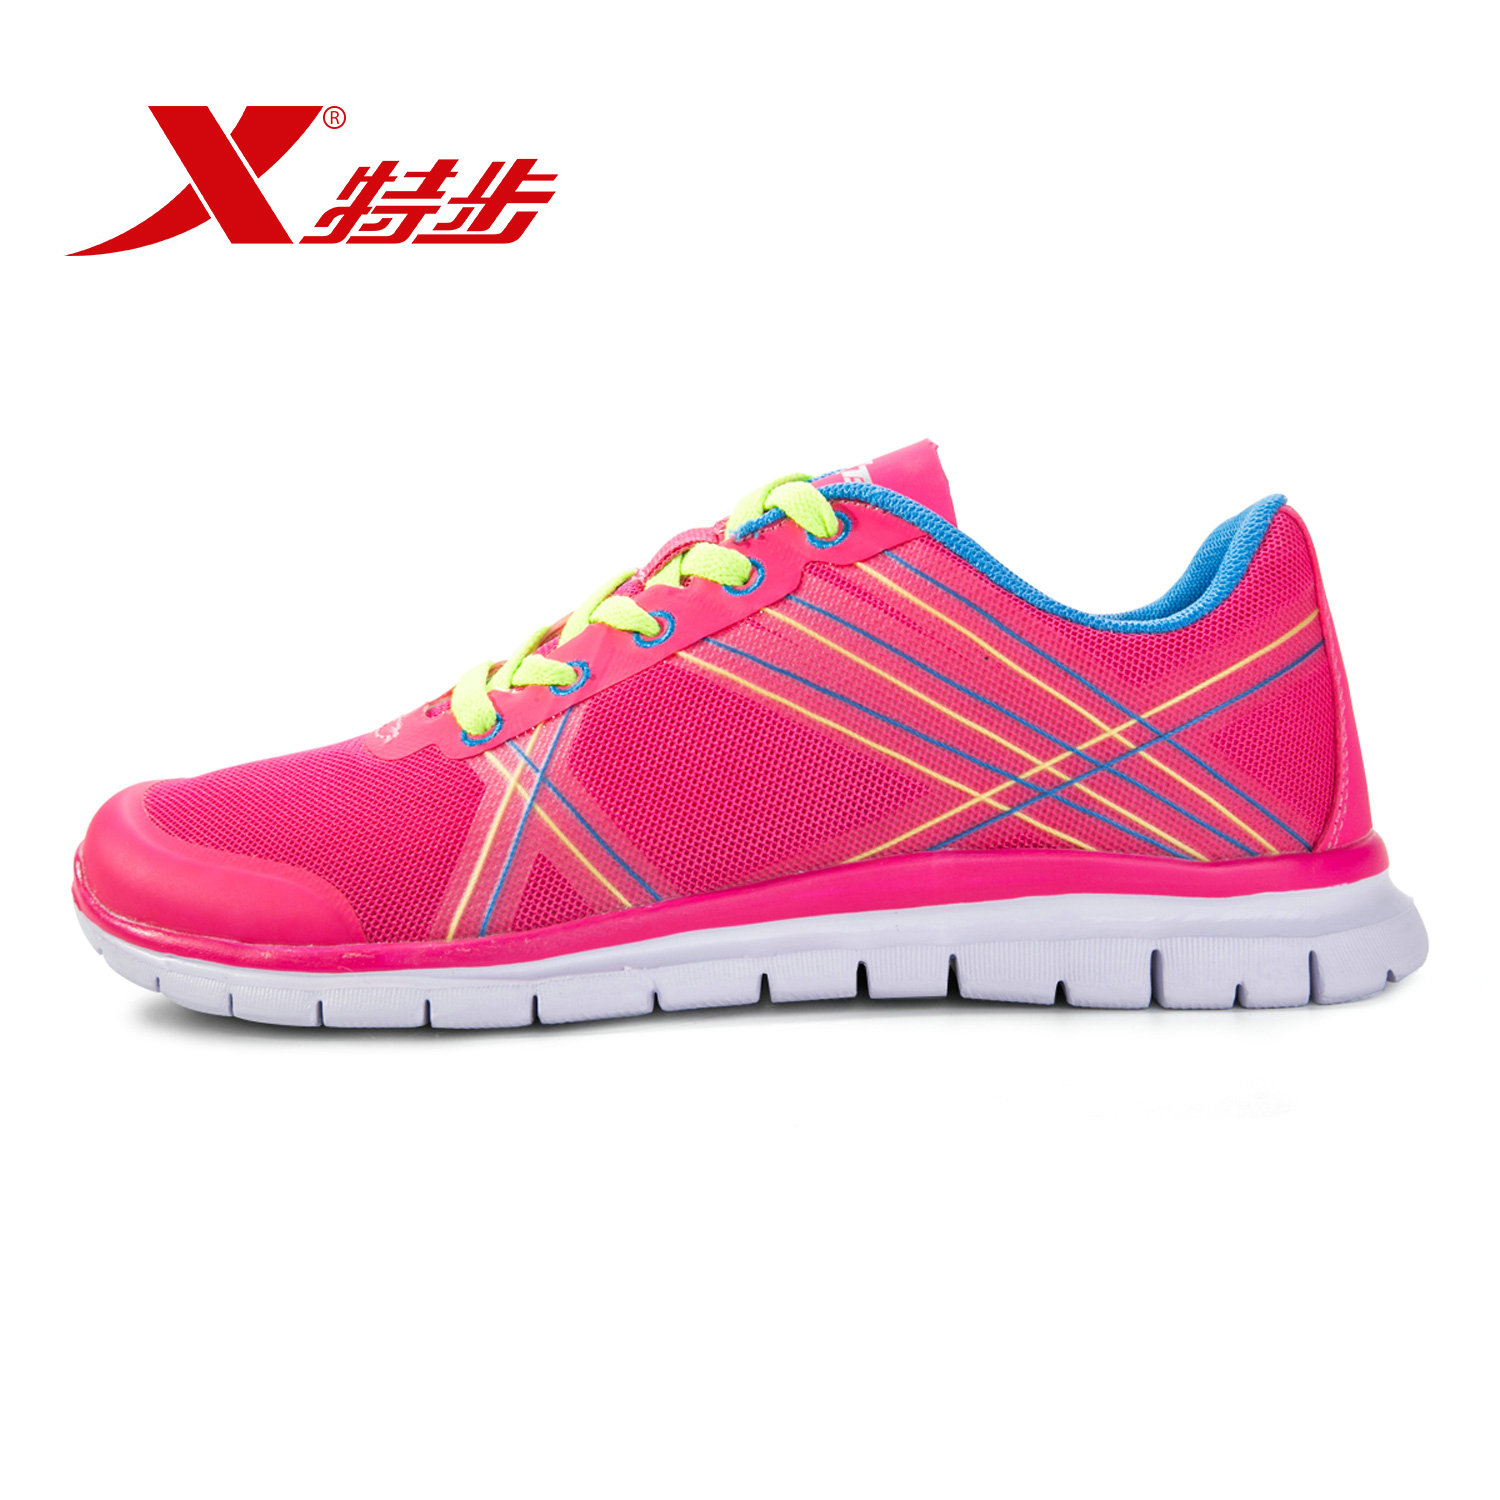 Xtep sports shoes summer shoes official authentic 2016 new women's running shoes lightweight casual shoes running shoes shock reduction female